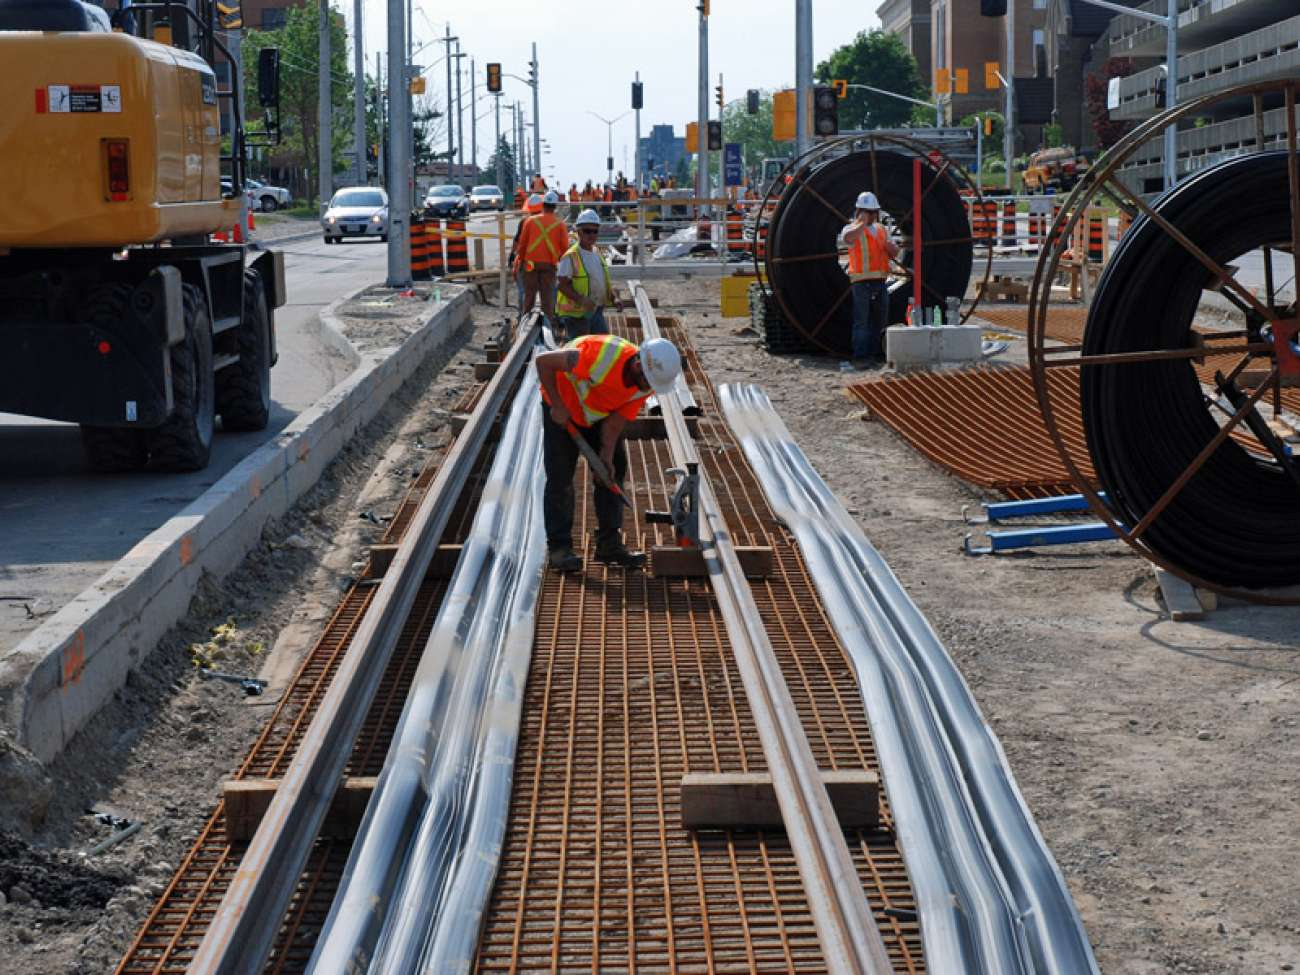 GrandLinq crews are hard at work on the ION track in front of GRH's KW Campus